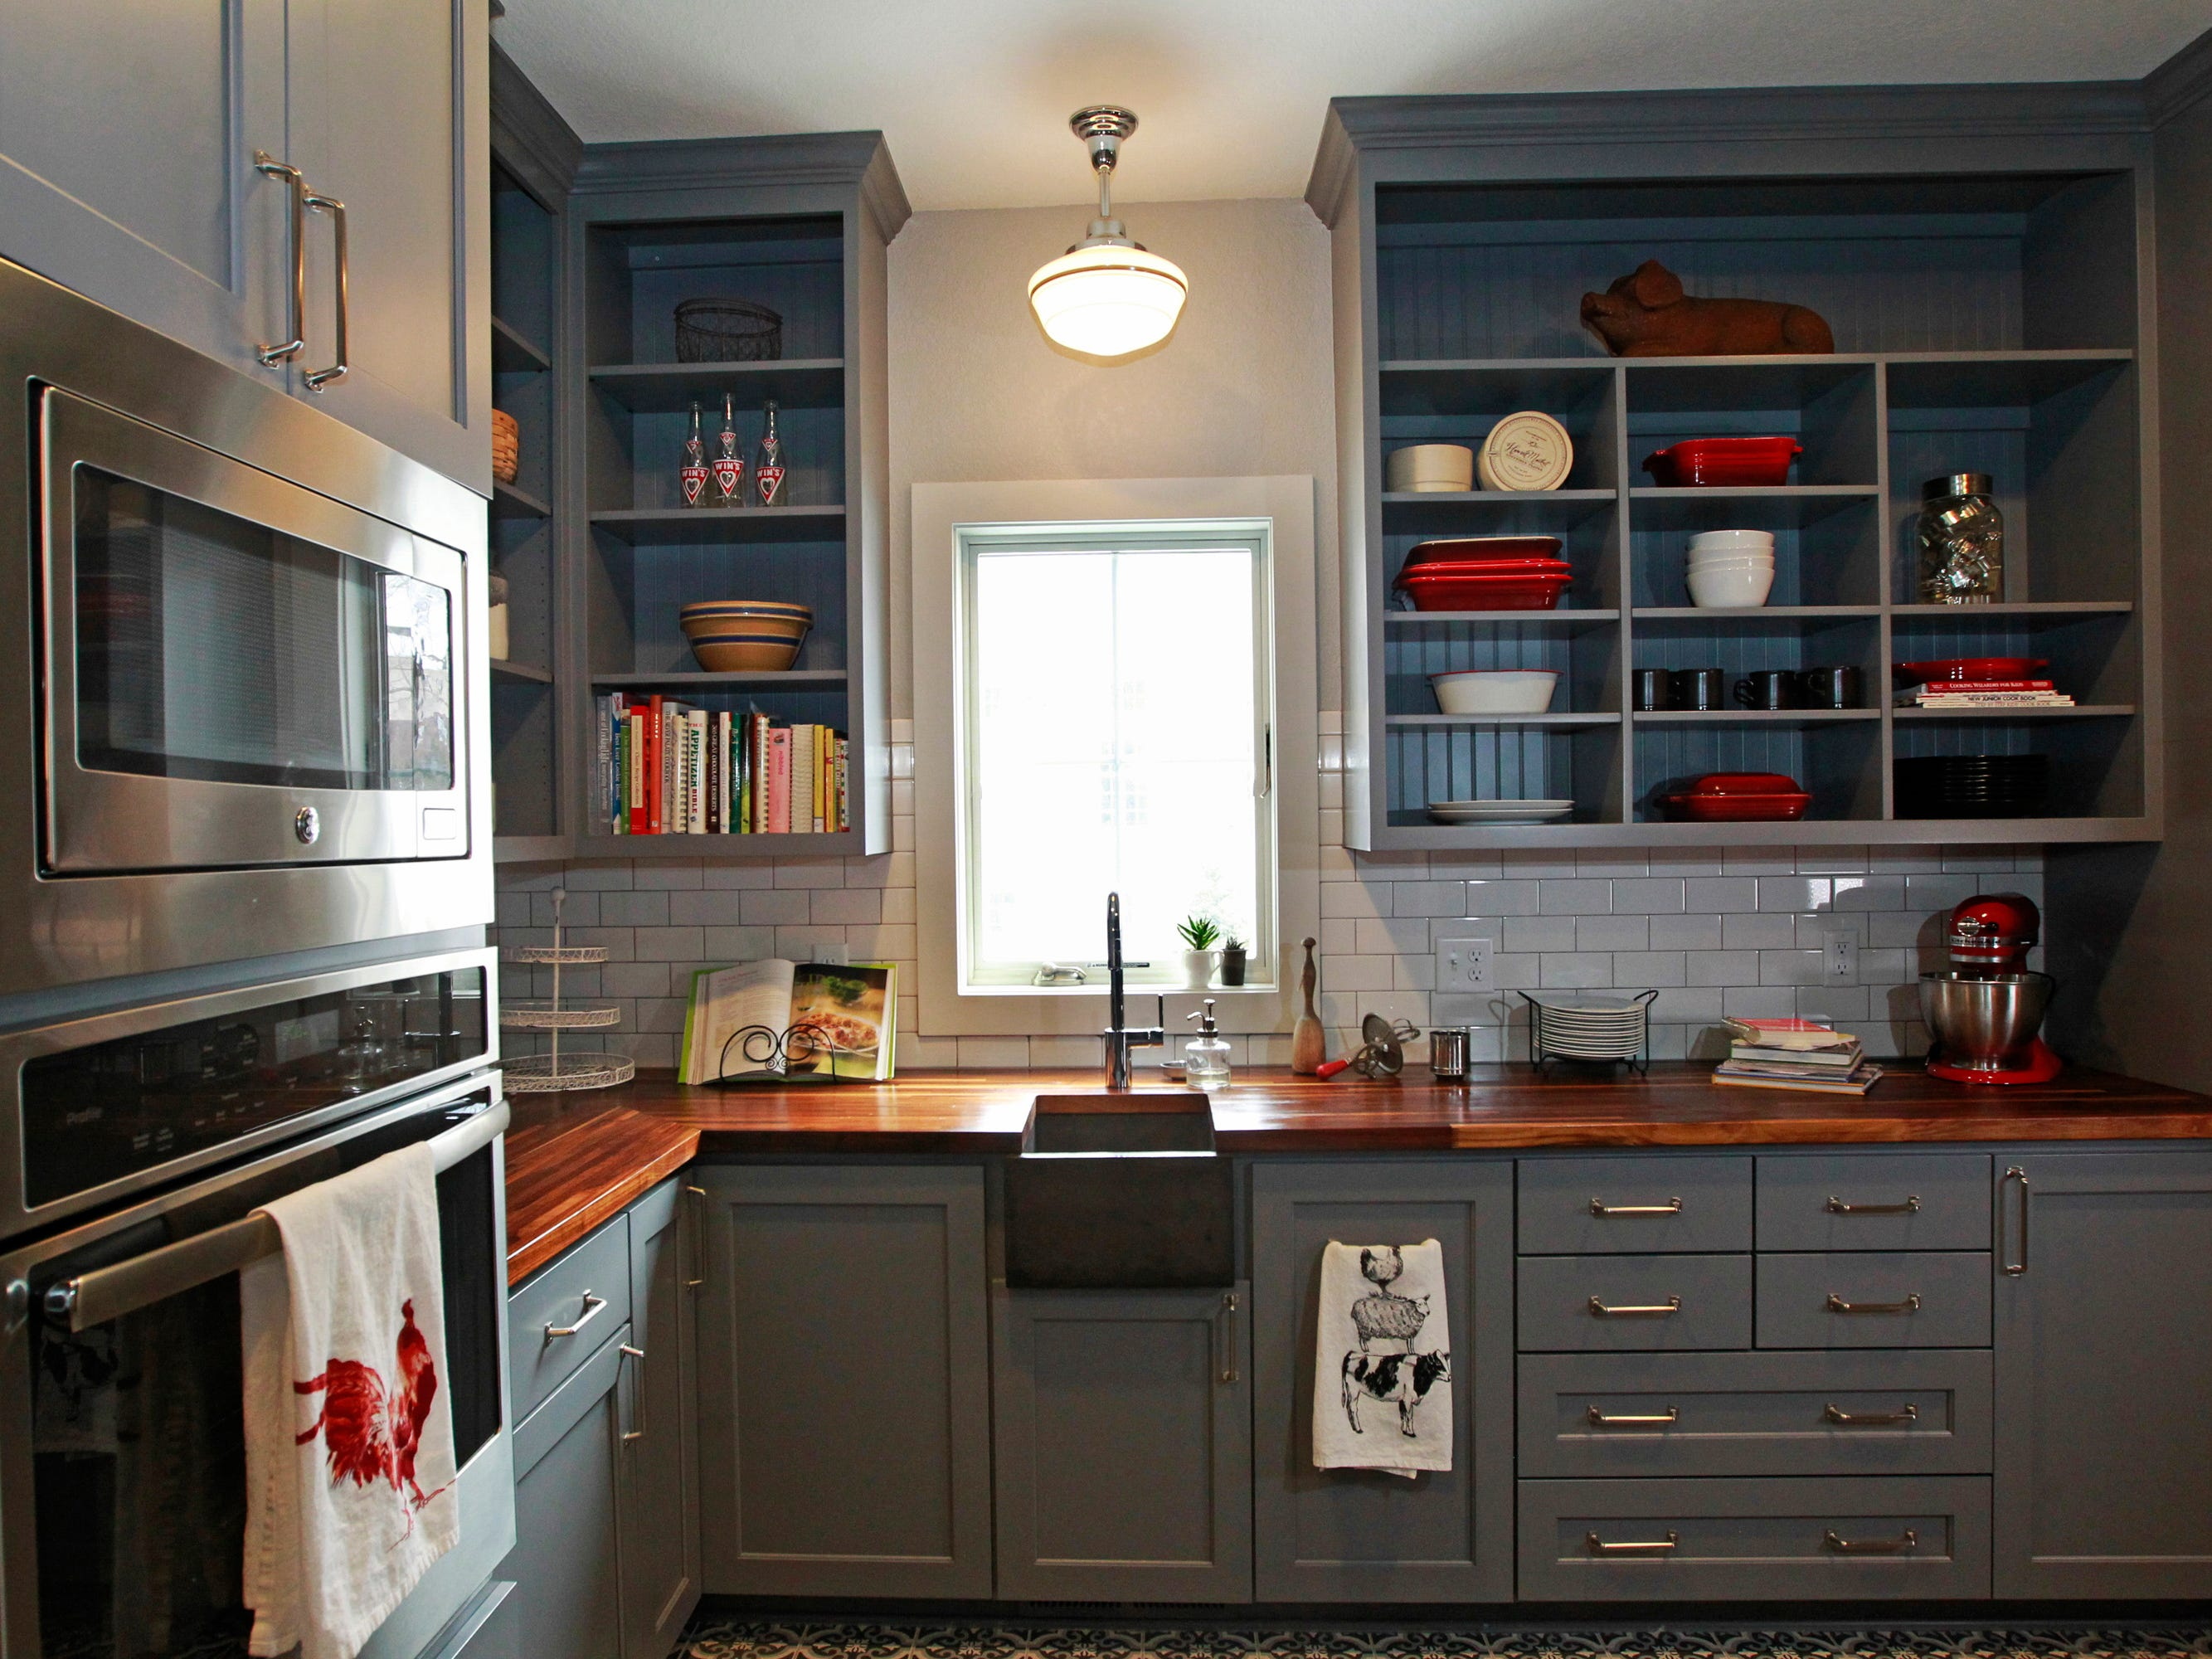 The butler's pantry provides a prep area, second stove, a microwave and additional storage beyond what's in the kitchen.